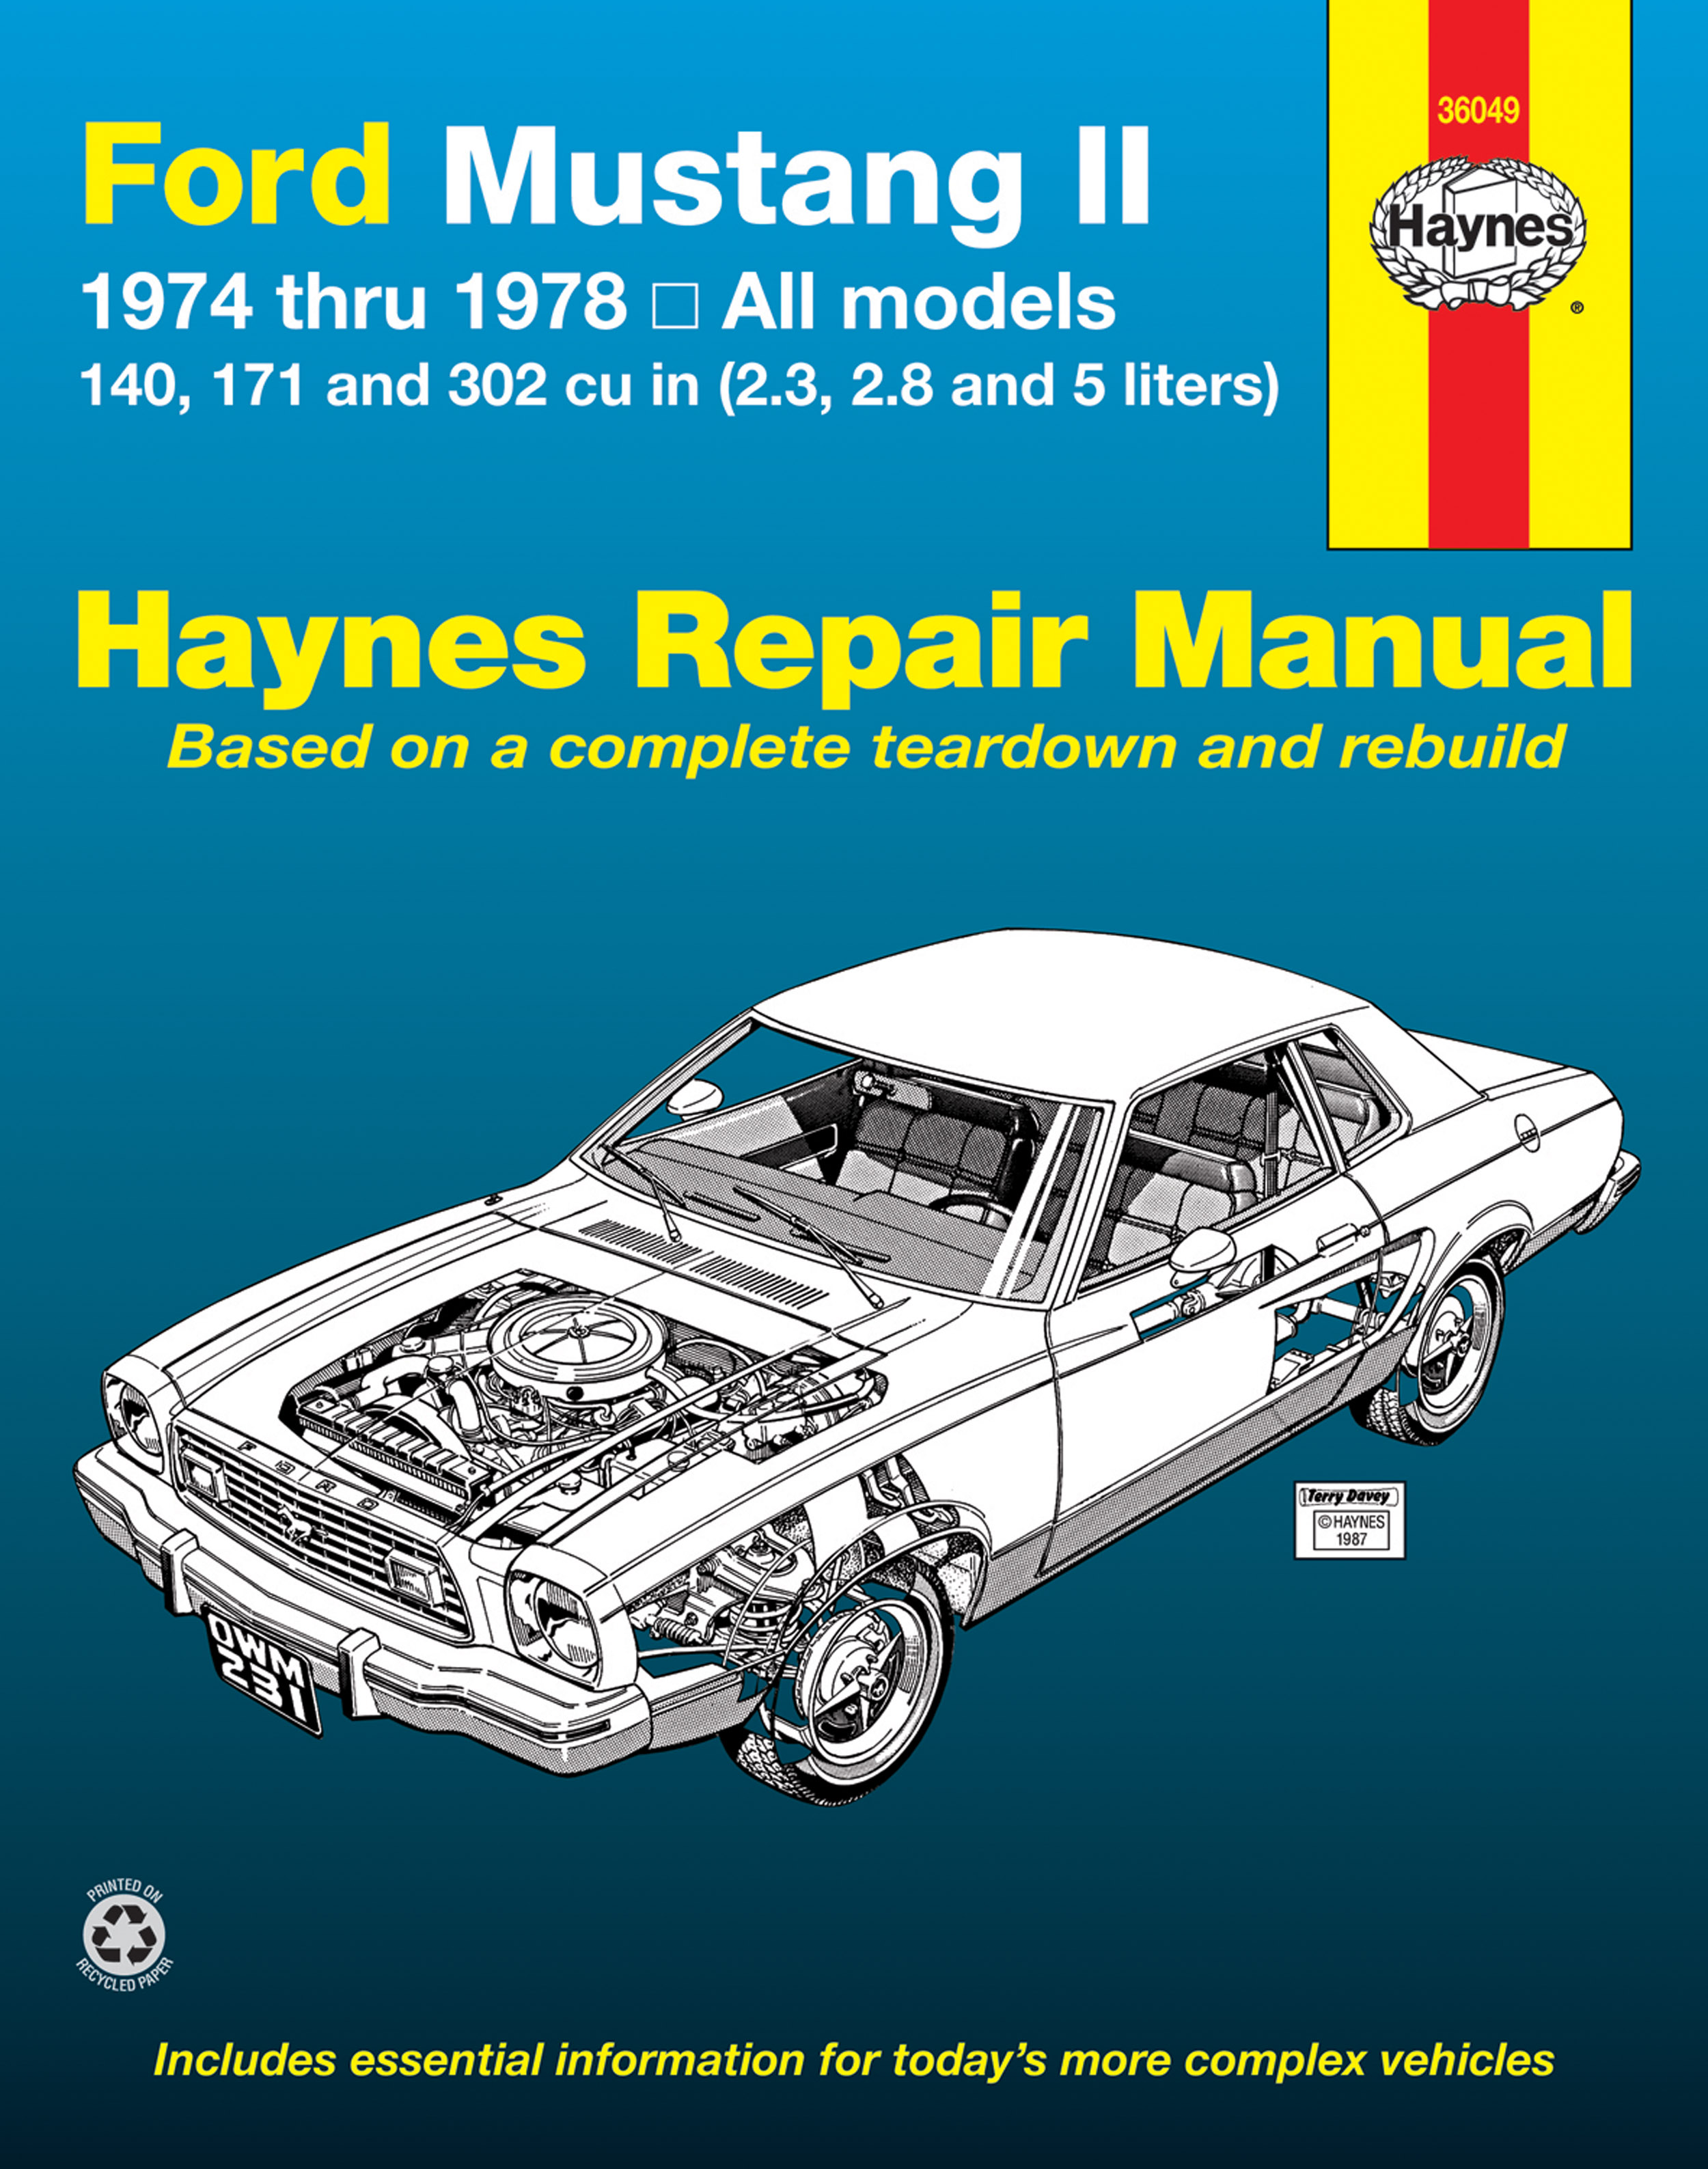 1978 ford mustang ii wiring diagram ford mustang ii (1974-1978) 4-cylinder, v6 & v8 haynes ... #1